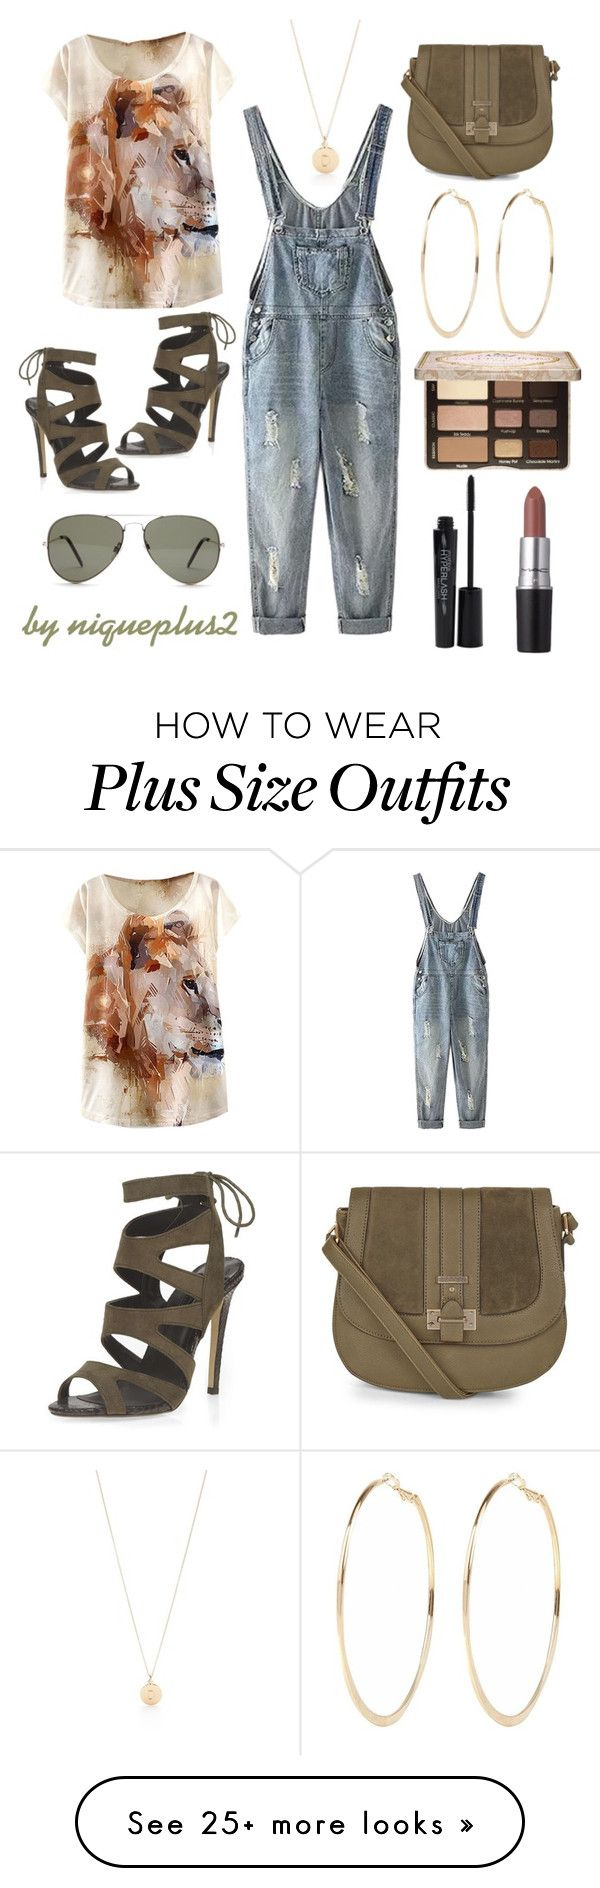 """""""+Look (Plus Size Look): Overalls"""" by niqueplus on Polyvore featuring moda, Kate Spade, WithChic, Dorothy Perkins, Forever 21, River Island, Too Faced Cosmetics, Smashbox, M.A.C e women's clothing"""